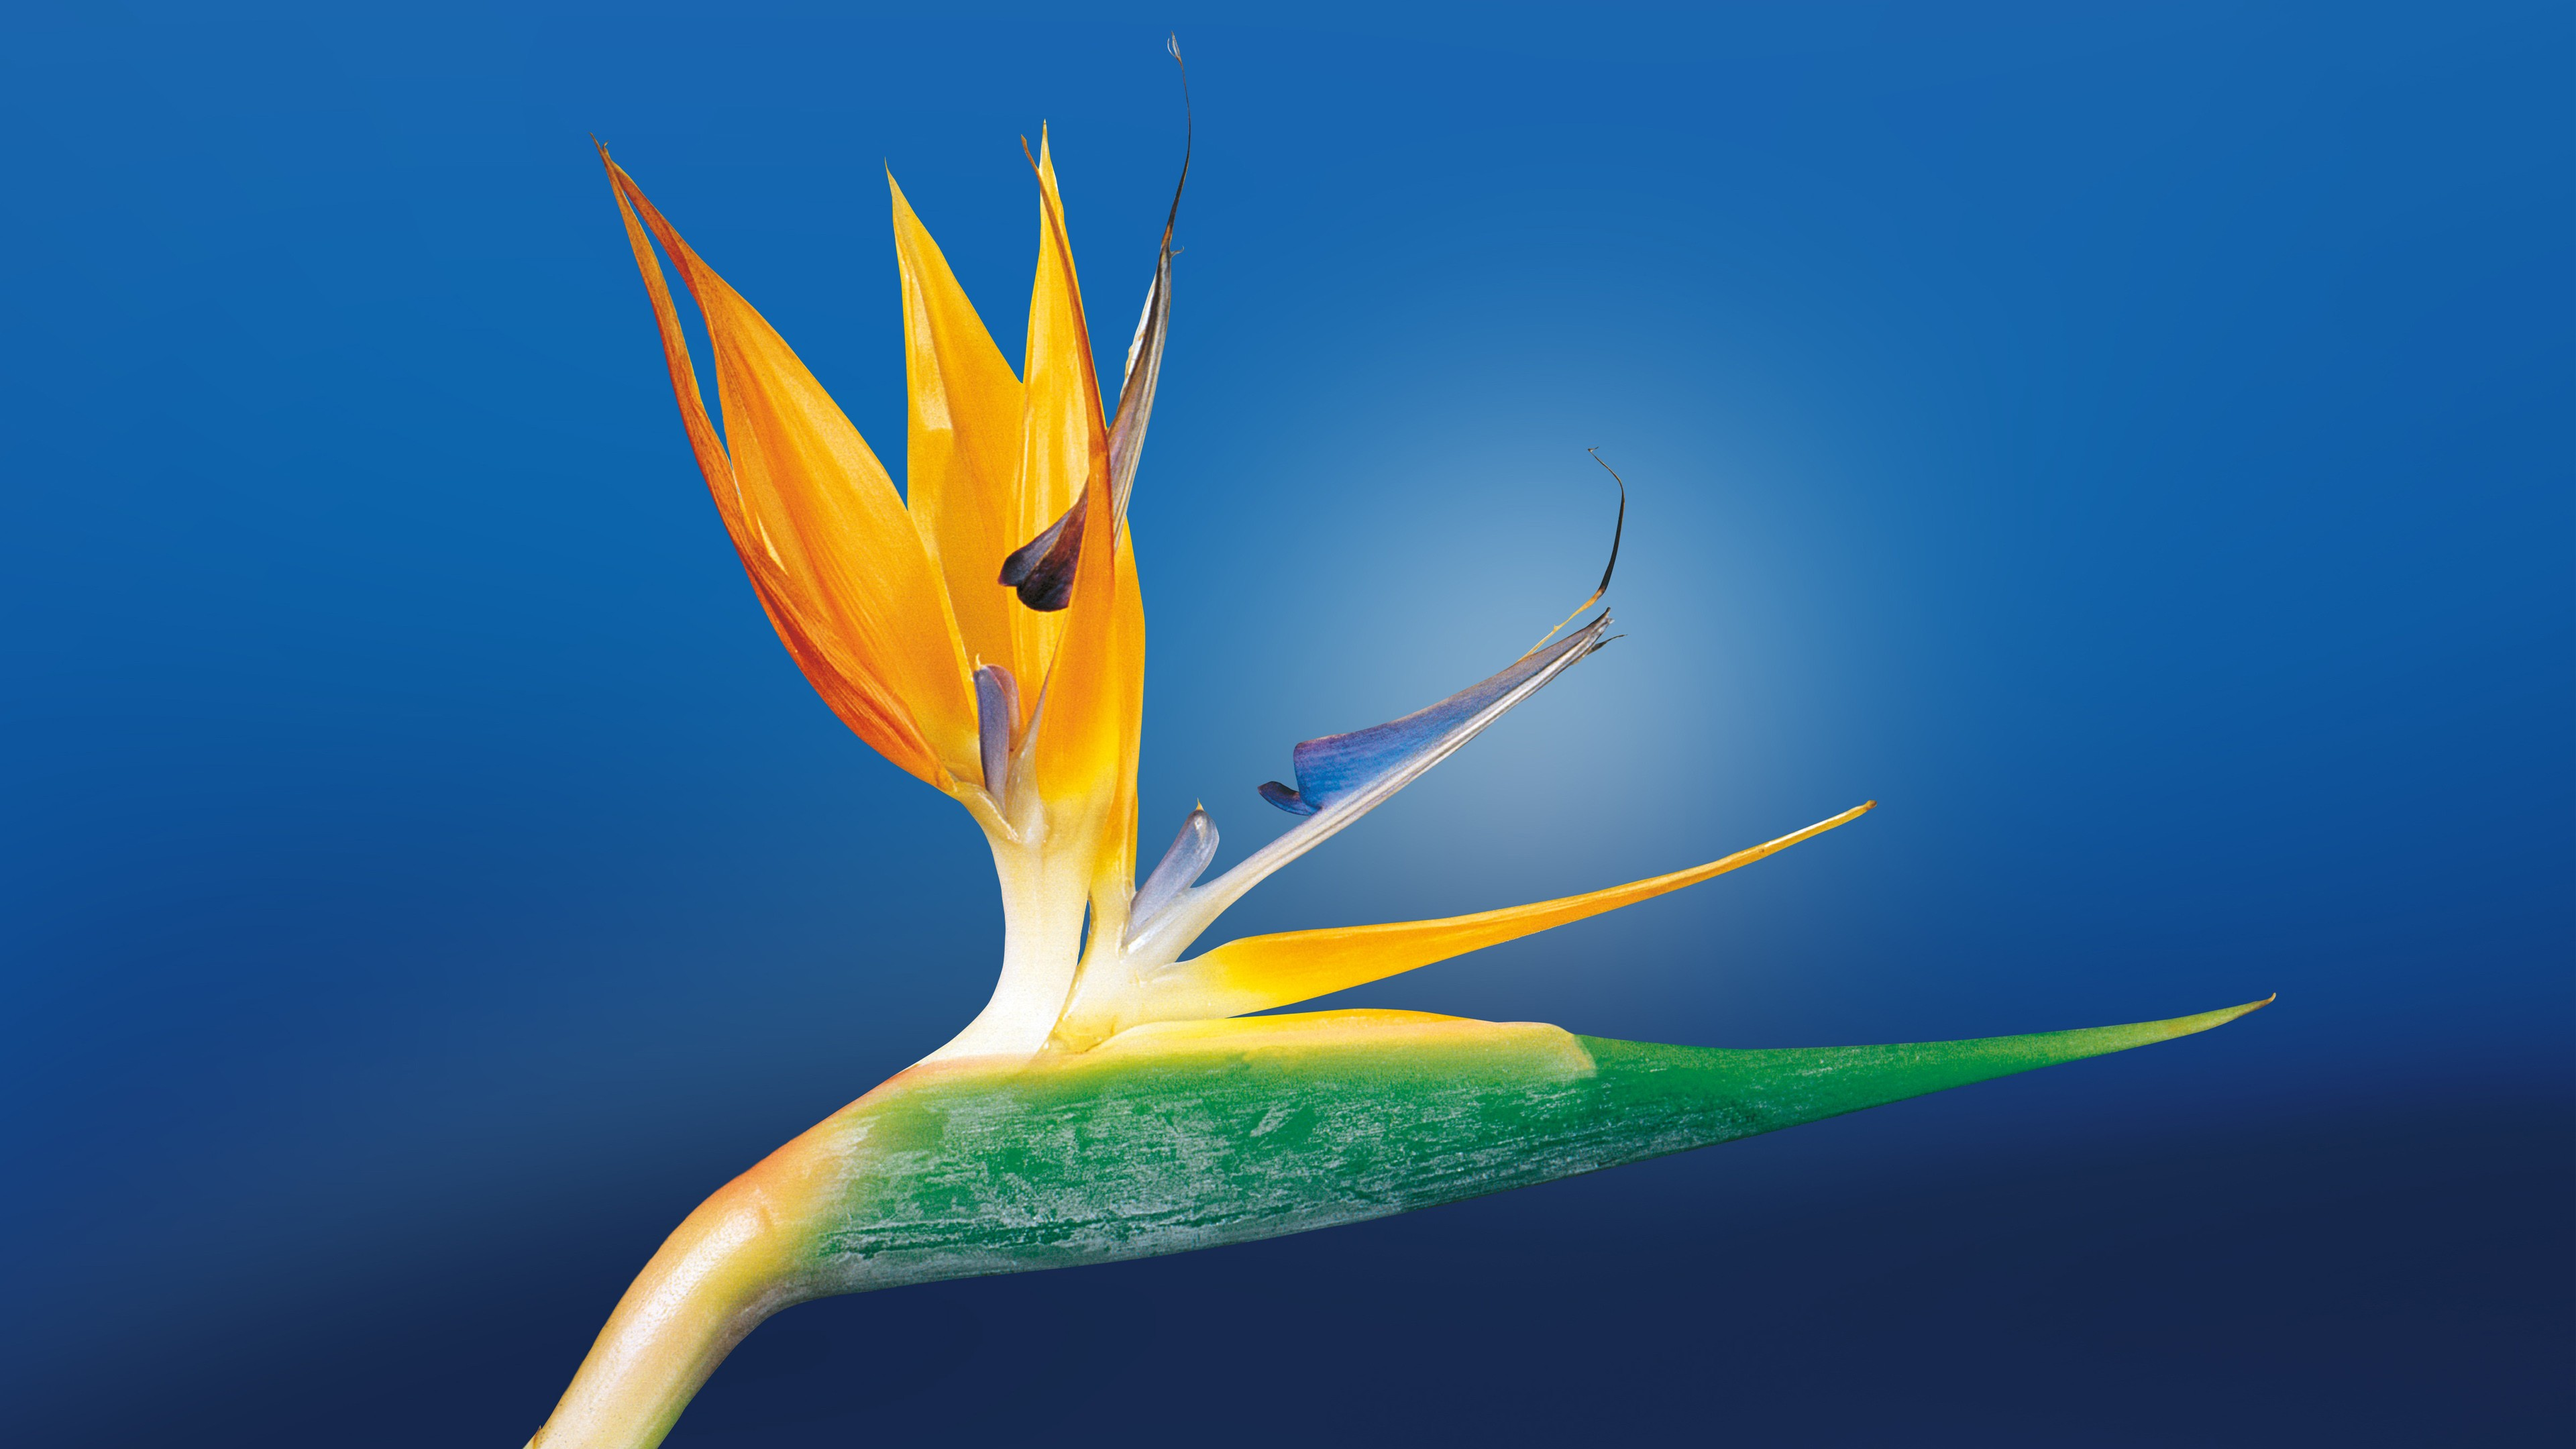 Bird Of Paradise Hd Wallpaper Bird Of Paradise Hd Flowers 4k Wallpapers Images